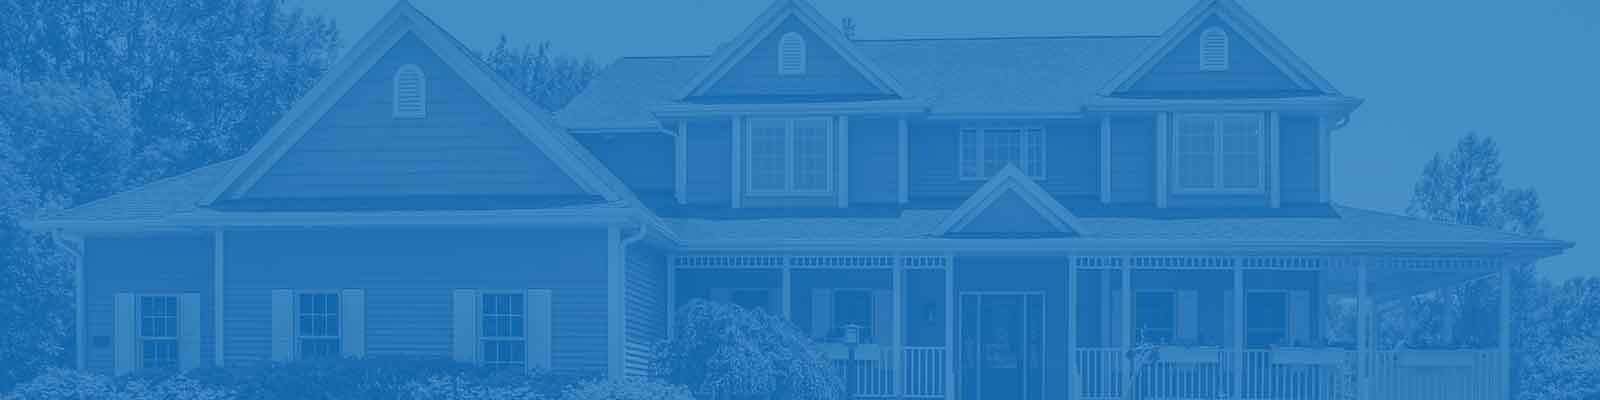 Need Your Siding Repaired? Contact Brothers! ~ Request A Consultation